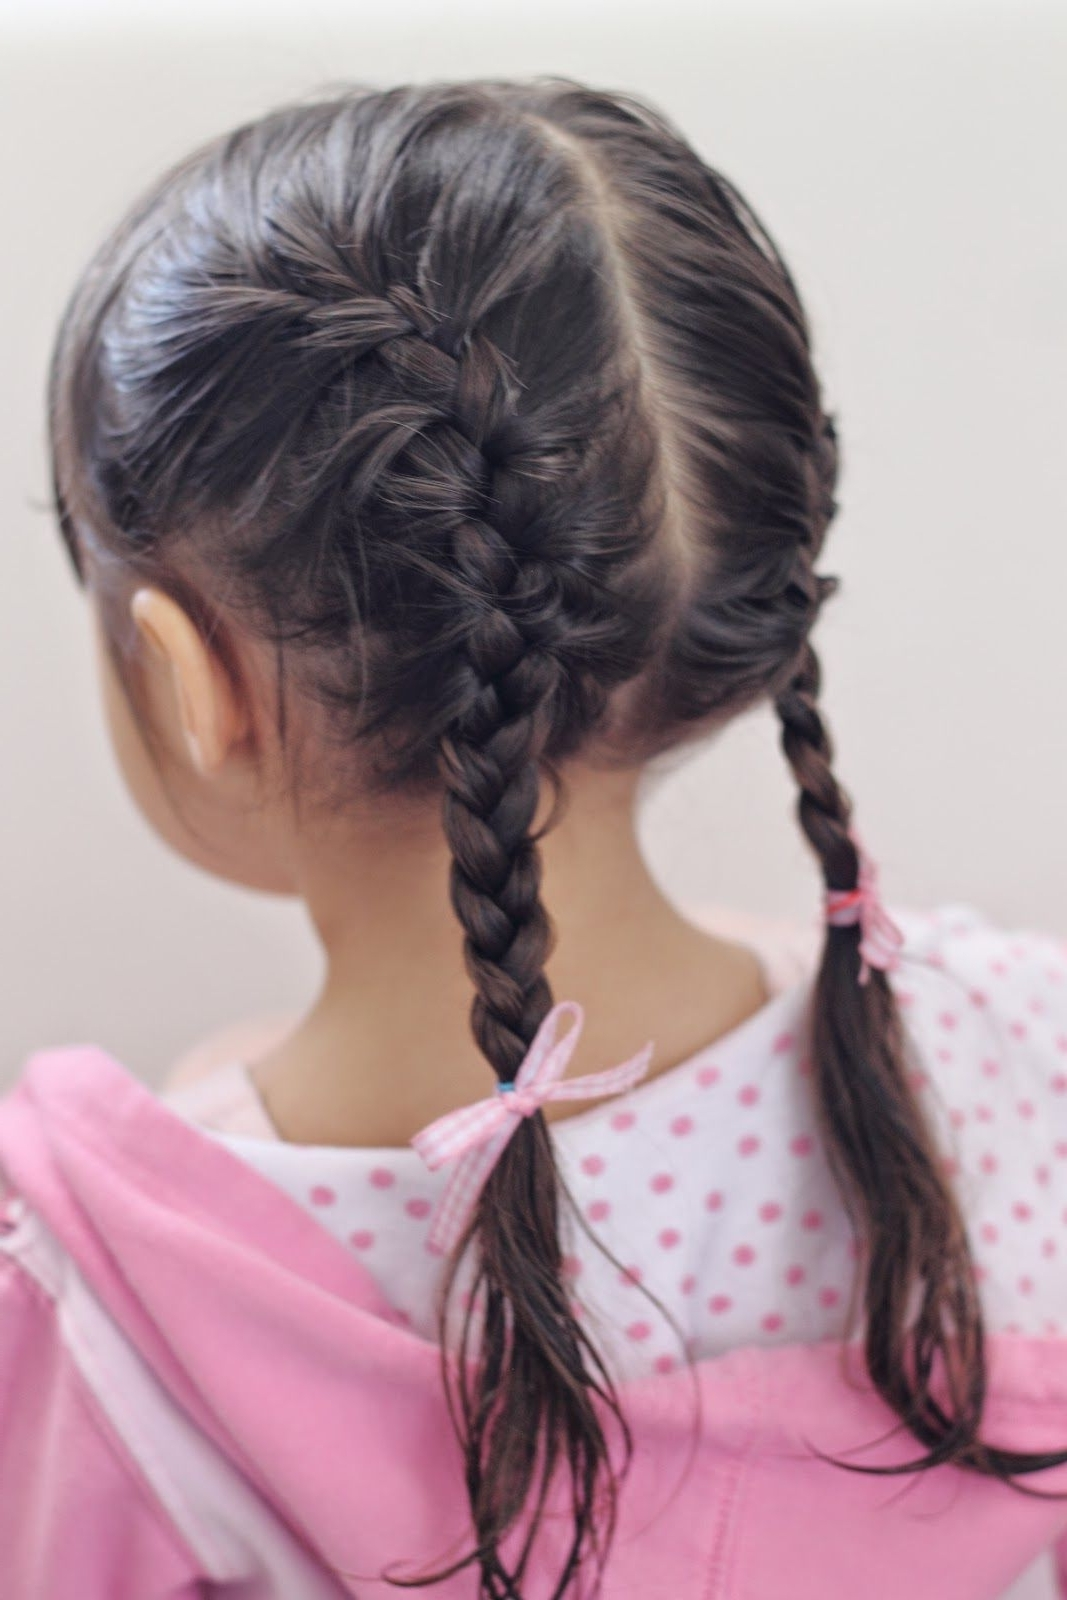 16 Toddler Hair Styles To Mix Up The Pony Tail And Simple Braids With Regard To Widely Used Dutch Inspired Pony Hairstyles (View 4 of 20)